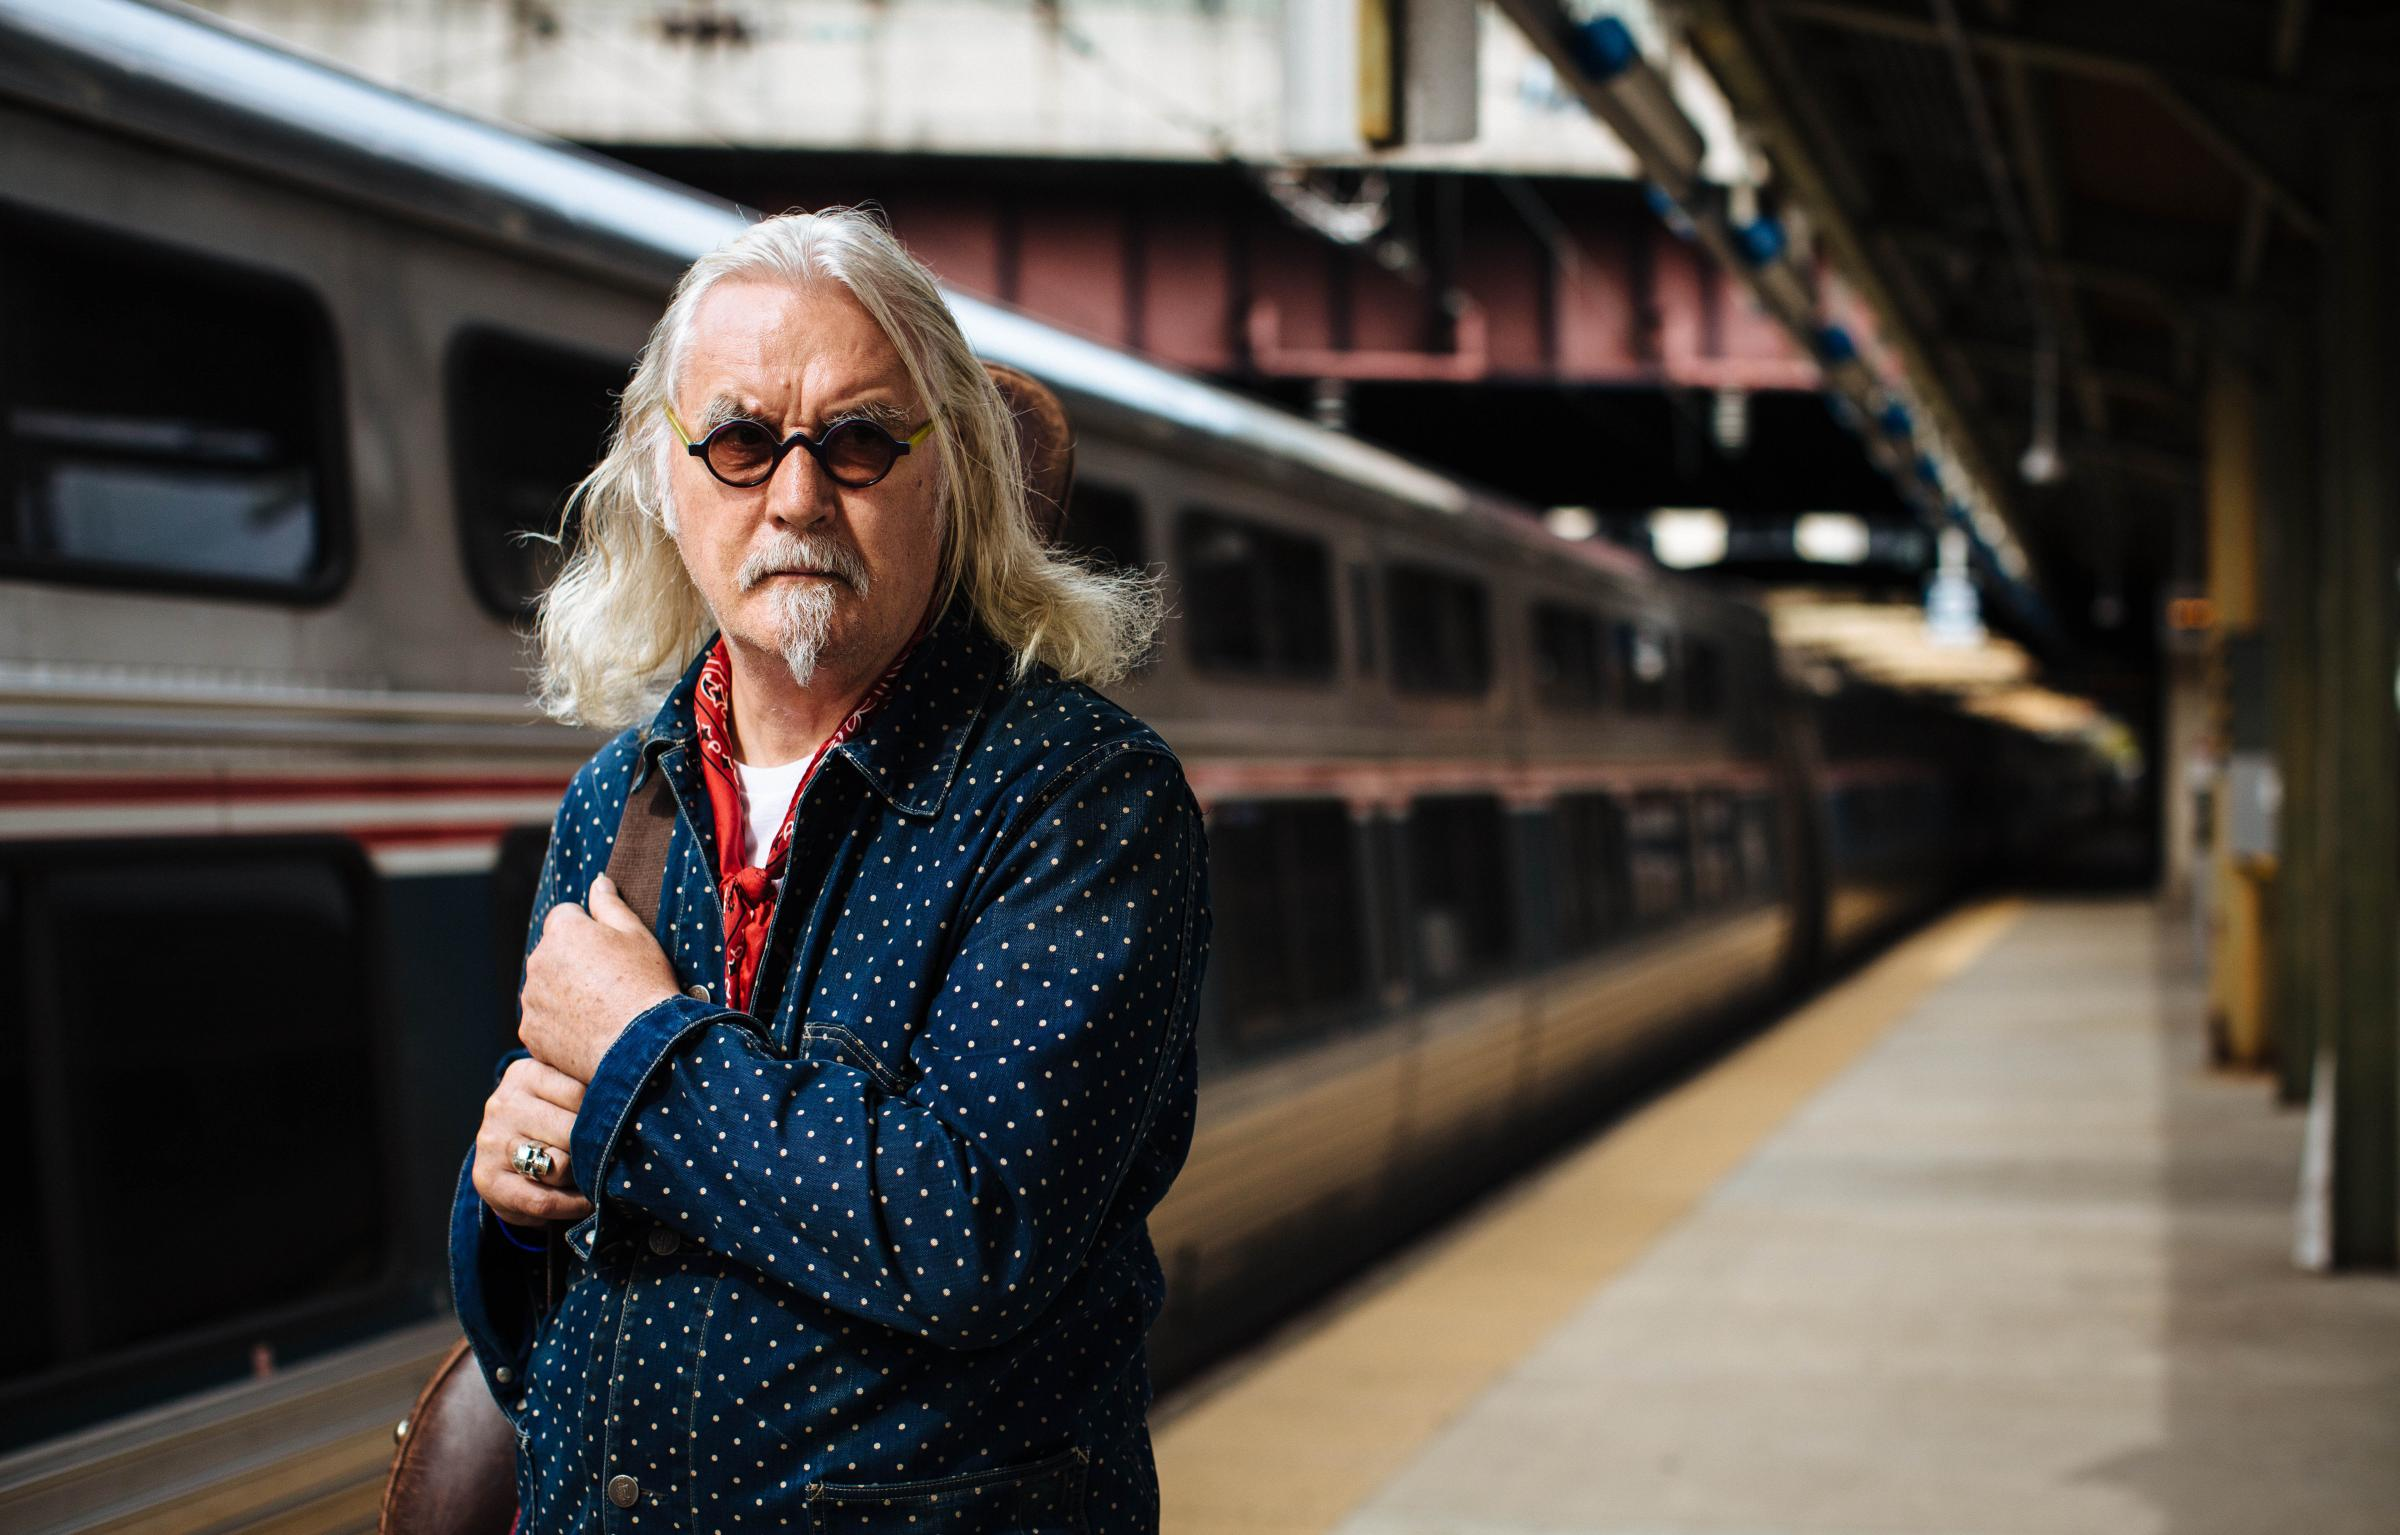 Billy Connolly says he isn't patriotic, but what exactly does it mean to be Scottish?